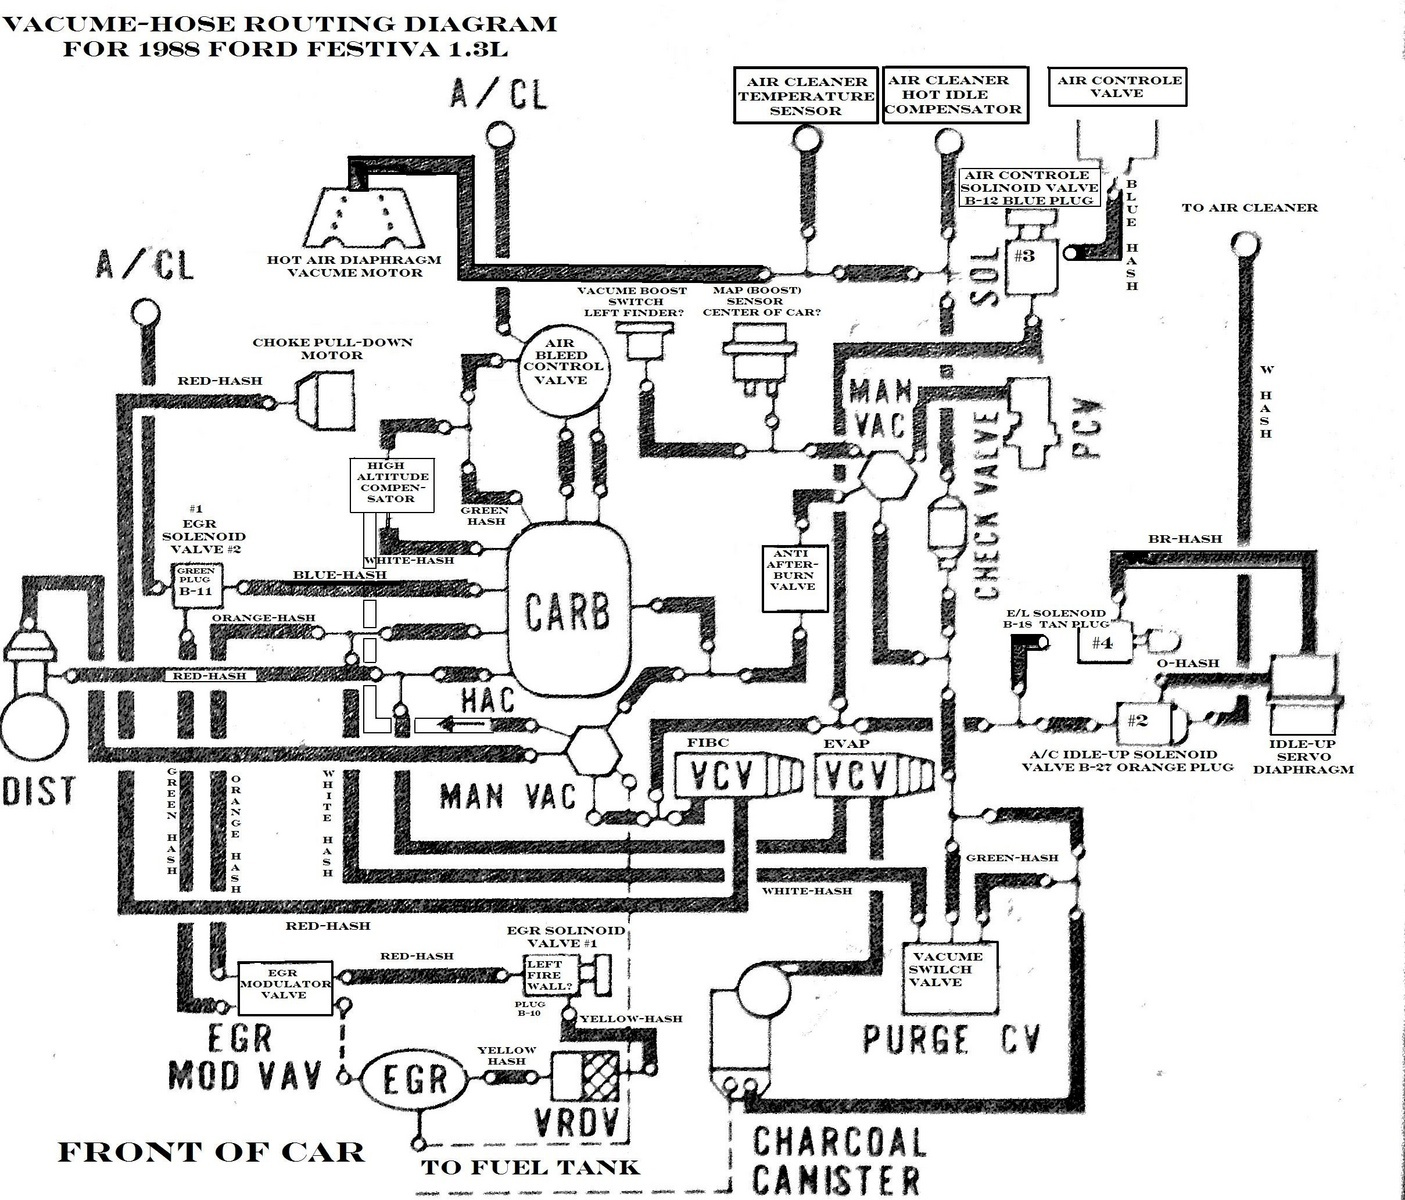 1991 ford festiva engine diagram ford festiva carburetor diagram